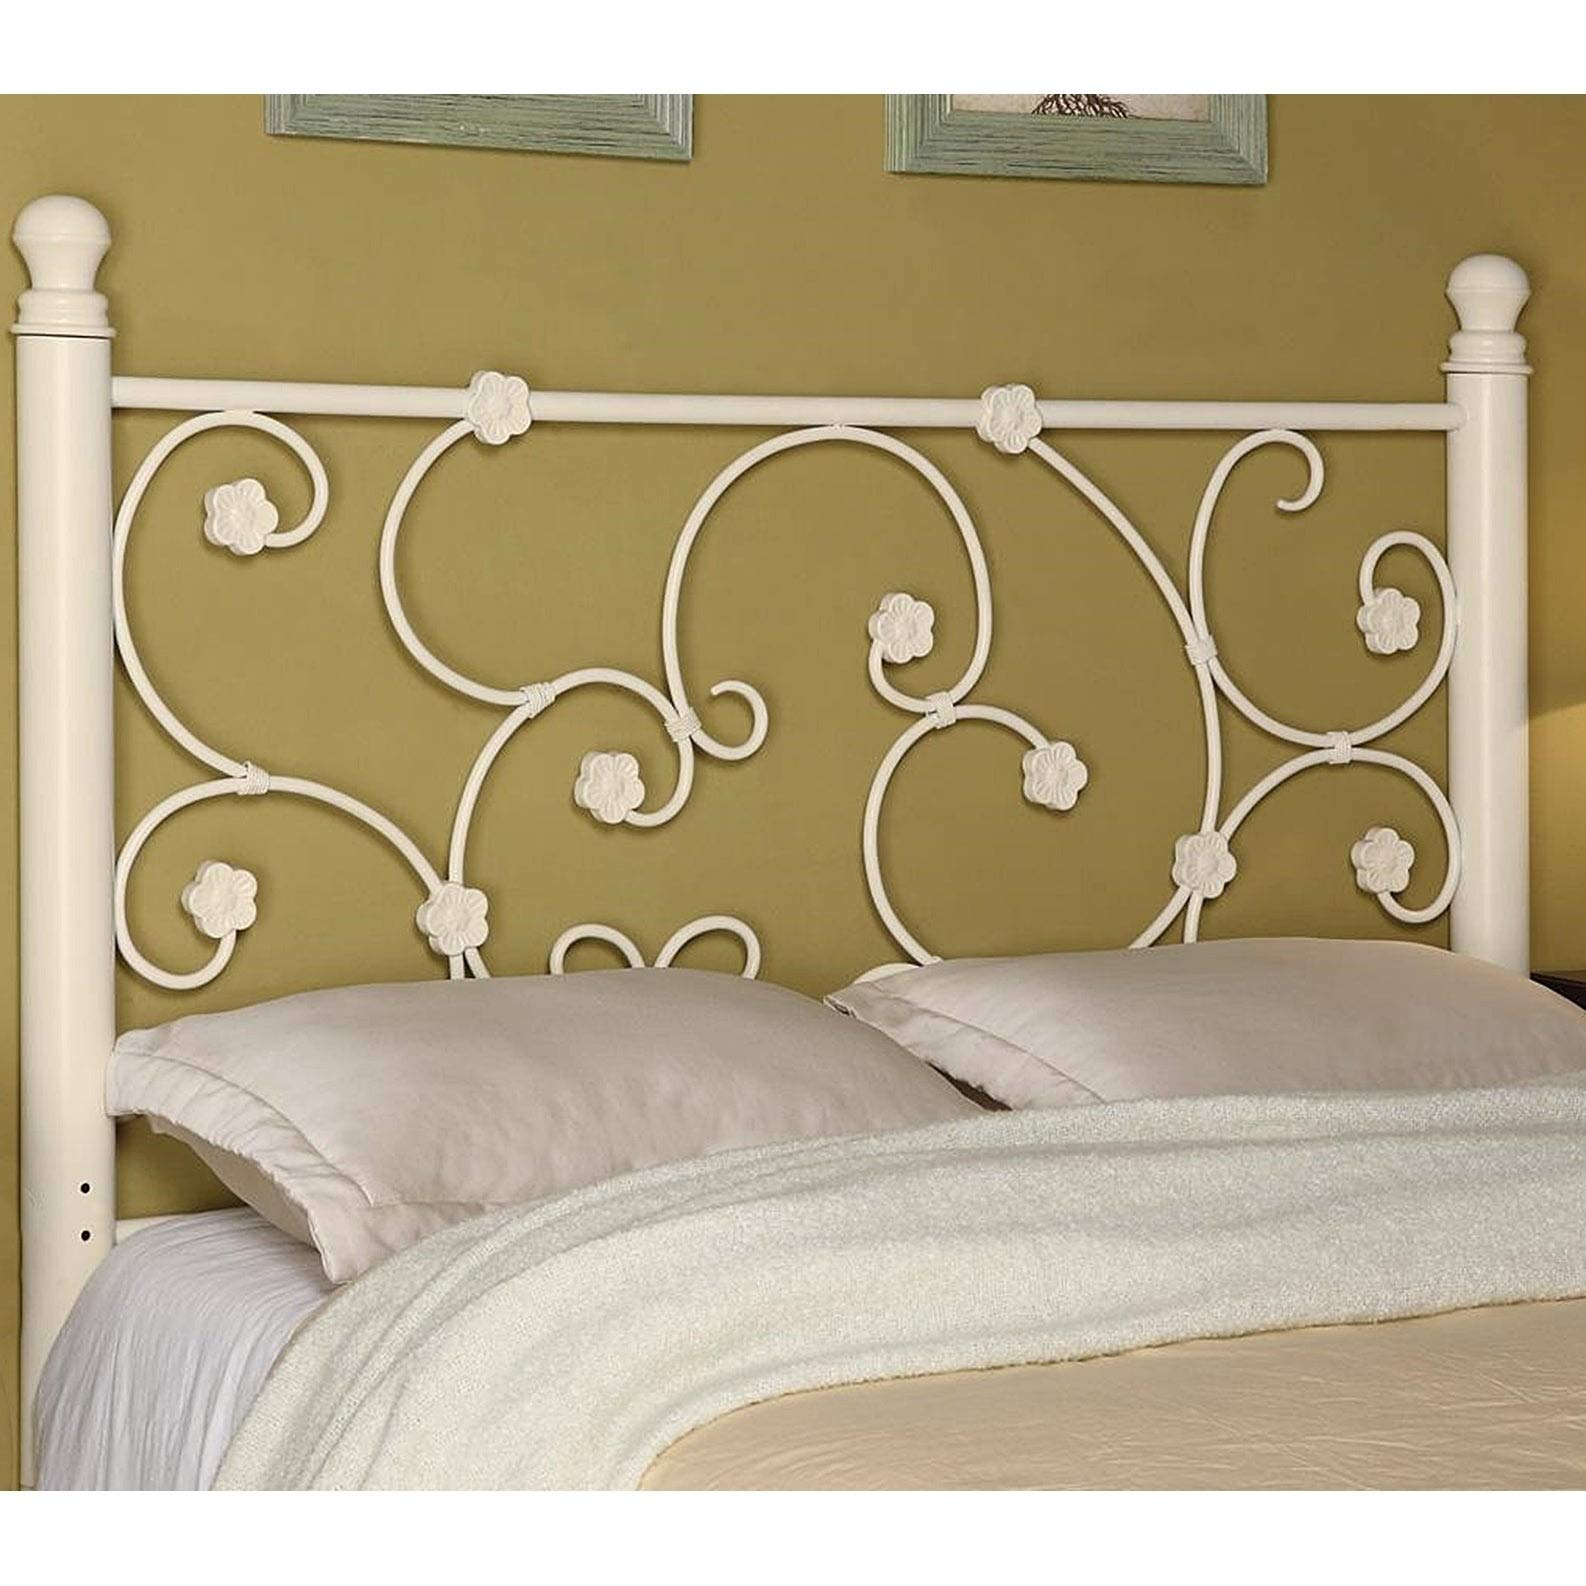 Riverdale Flourishing Full/Queen White Metal Headboard Modern Contemporary Traditional by Unknown